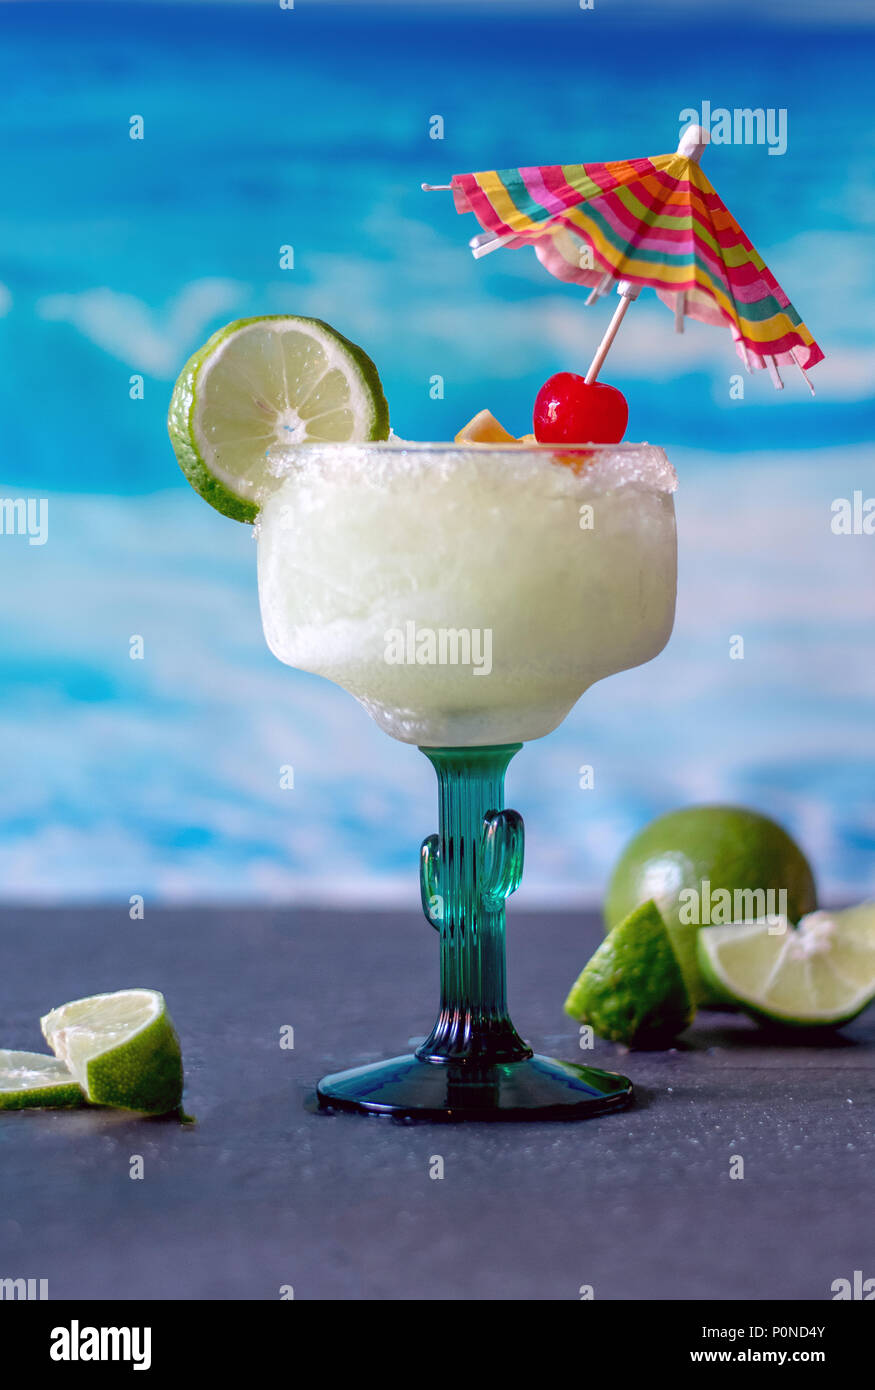 delicious frozen margarita drinks with lime and cherry garnish and a colorful drink umbrella Stock Photo